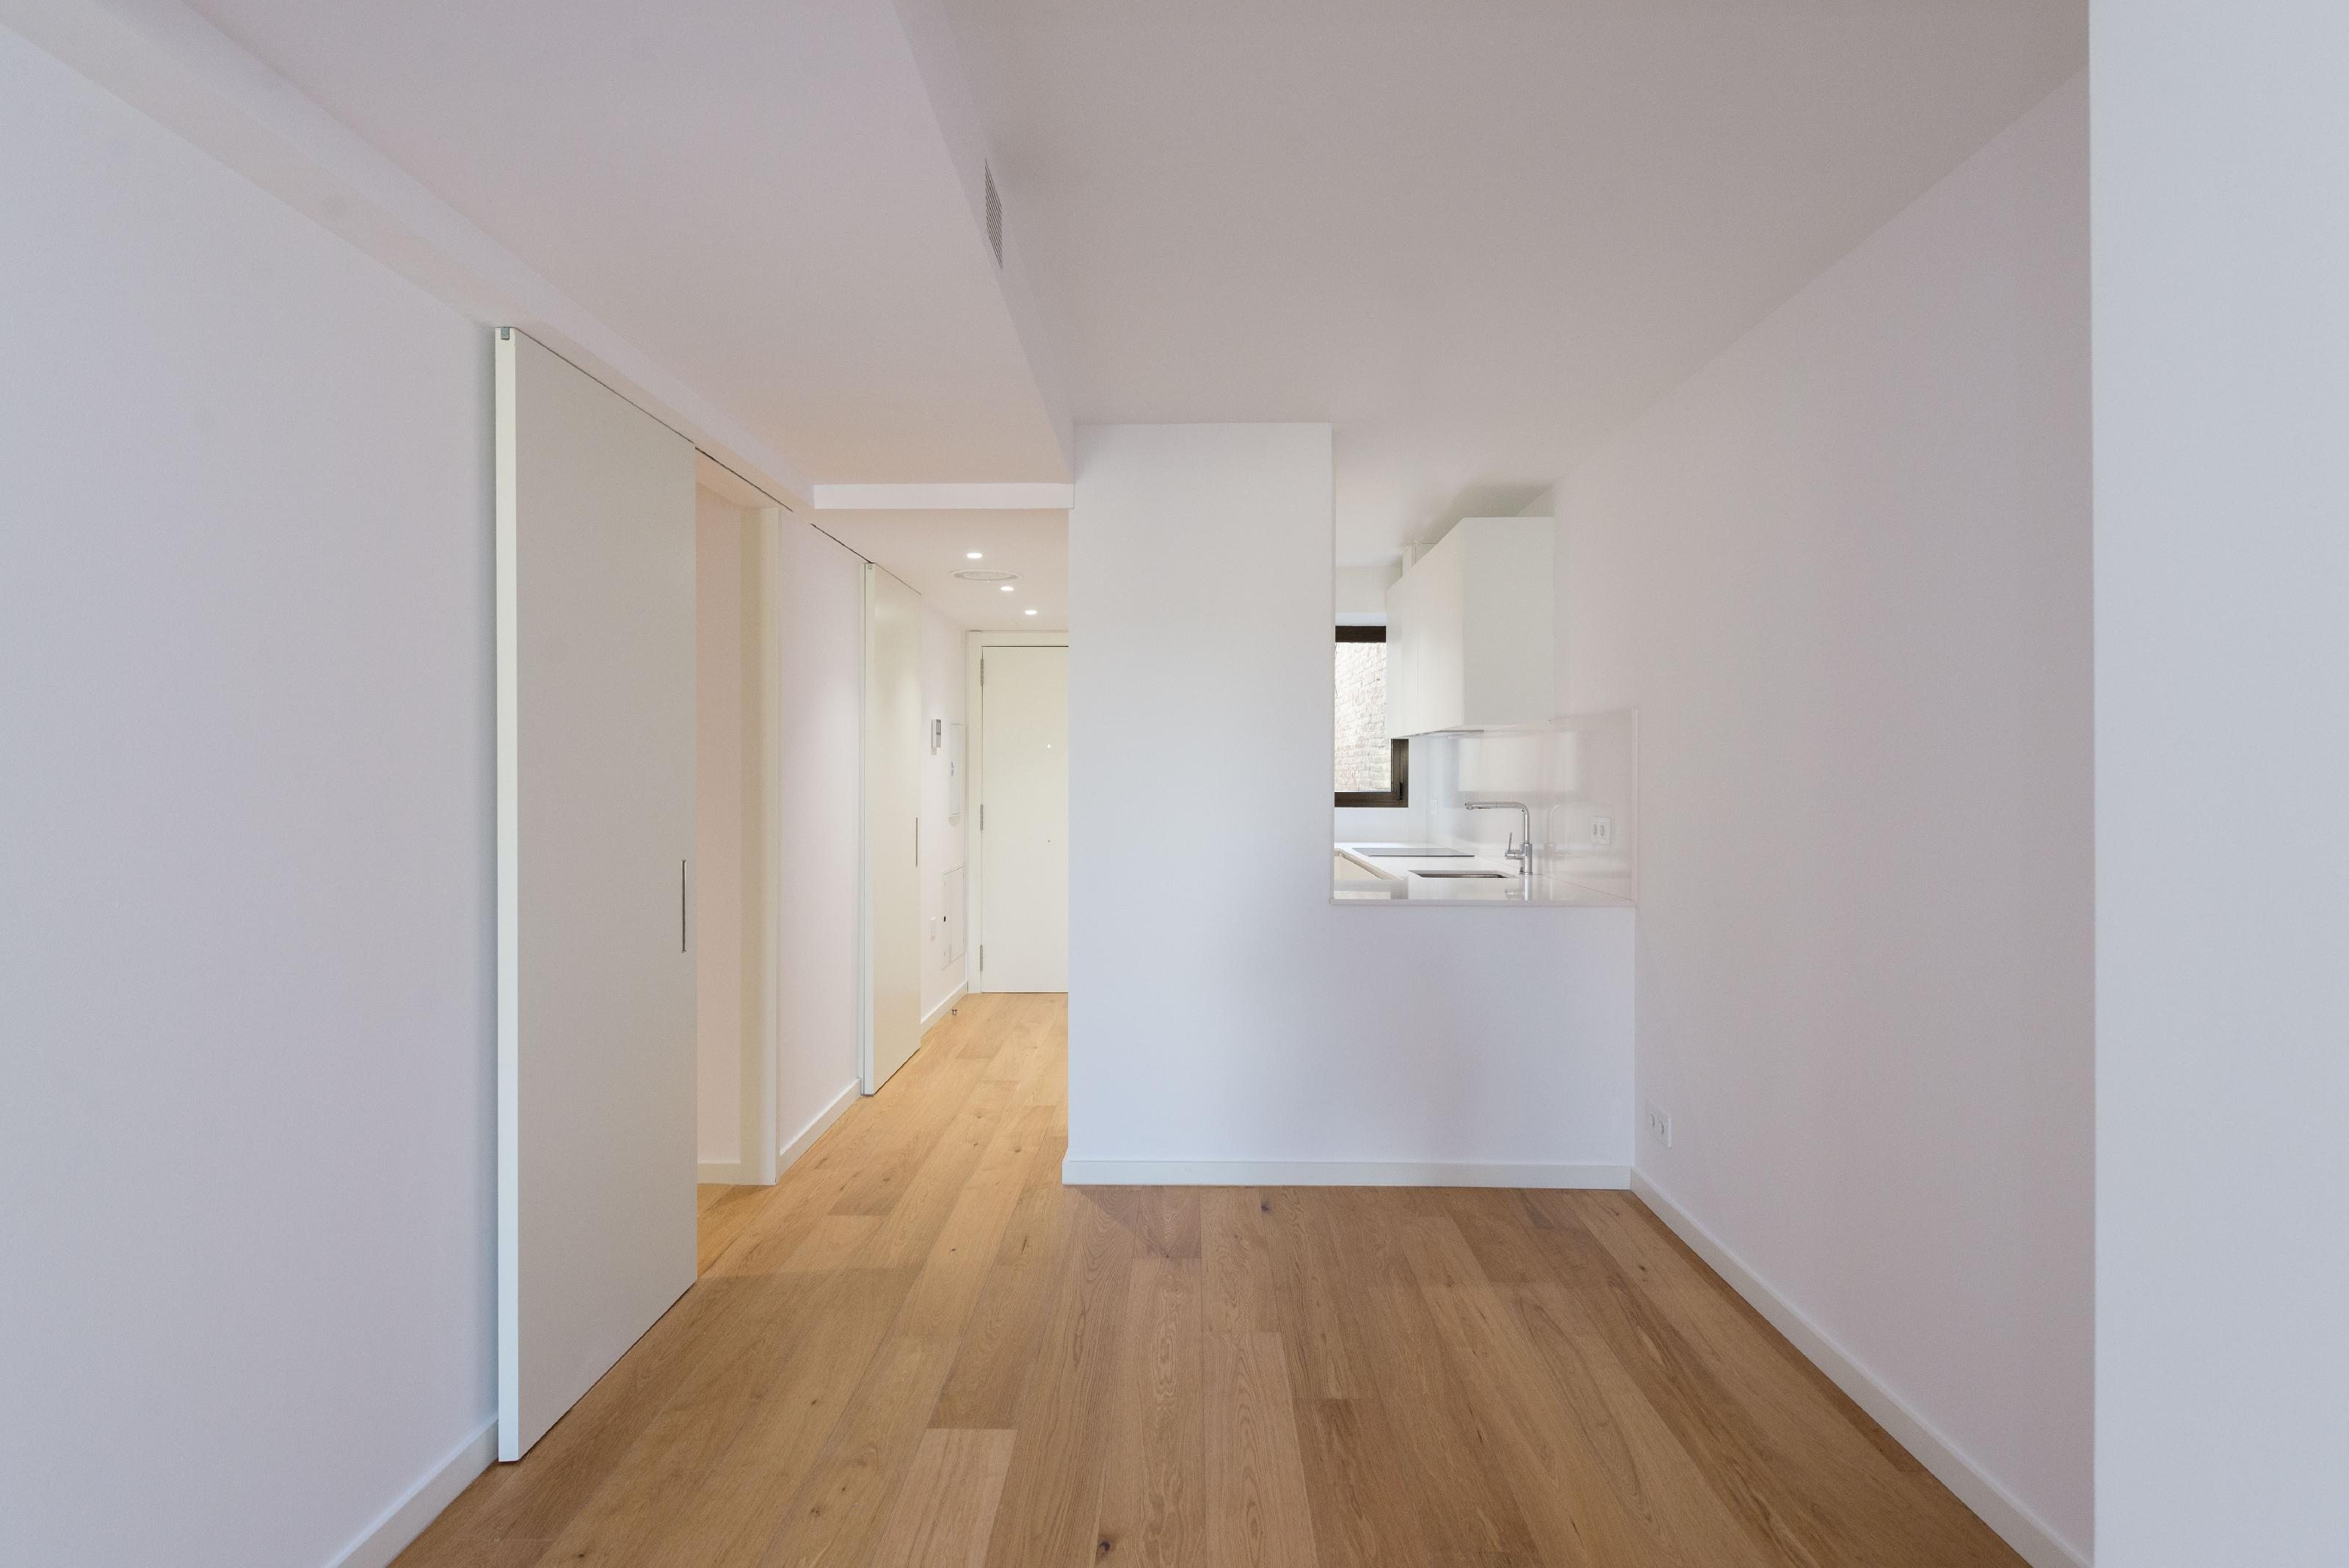 236358 Flat for sale in Eixample, Old Left Eixample 6